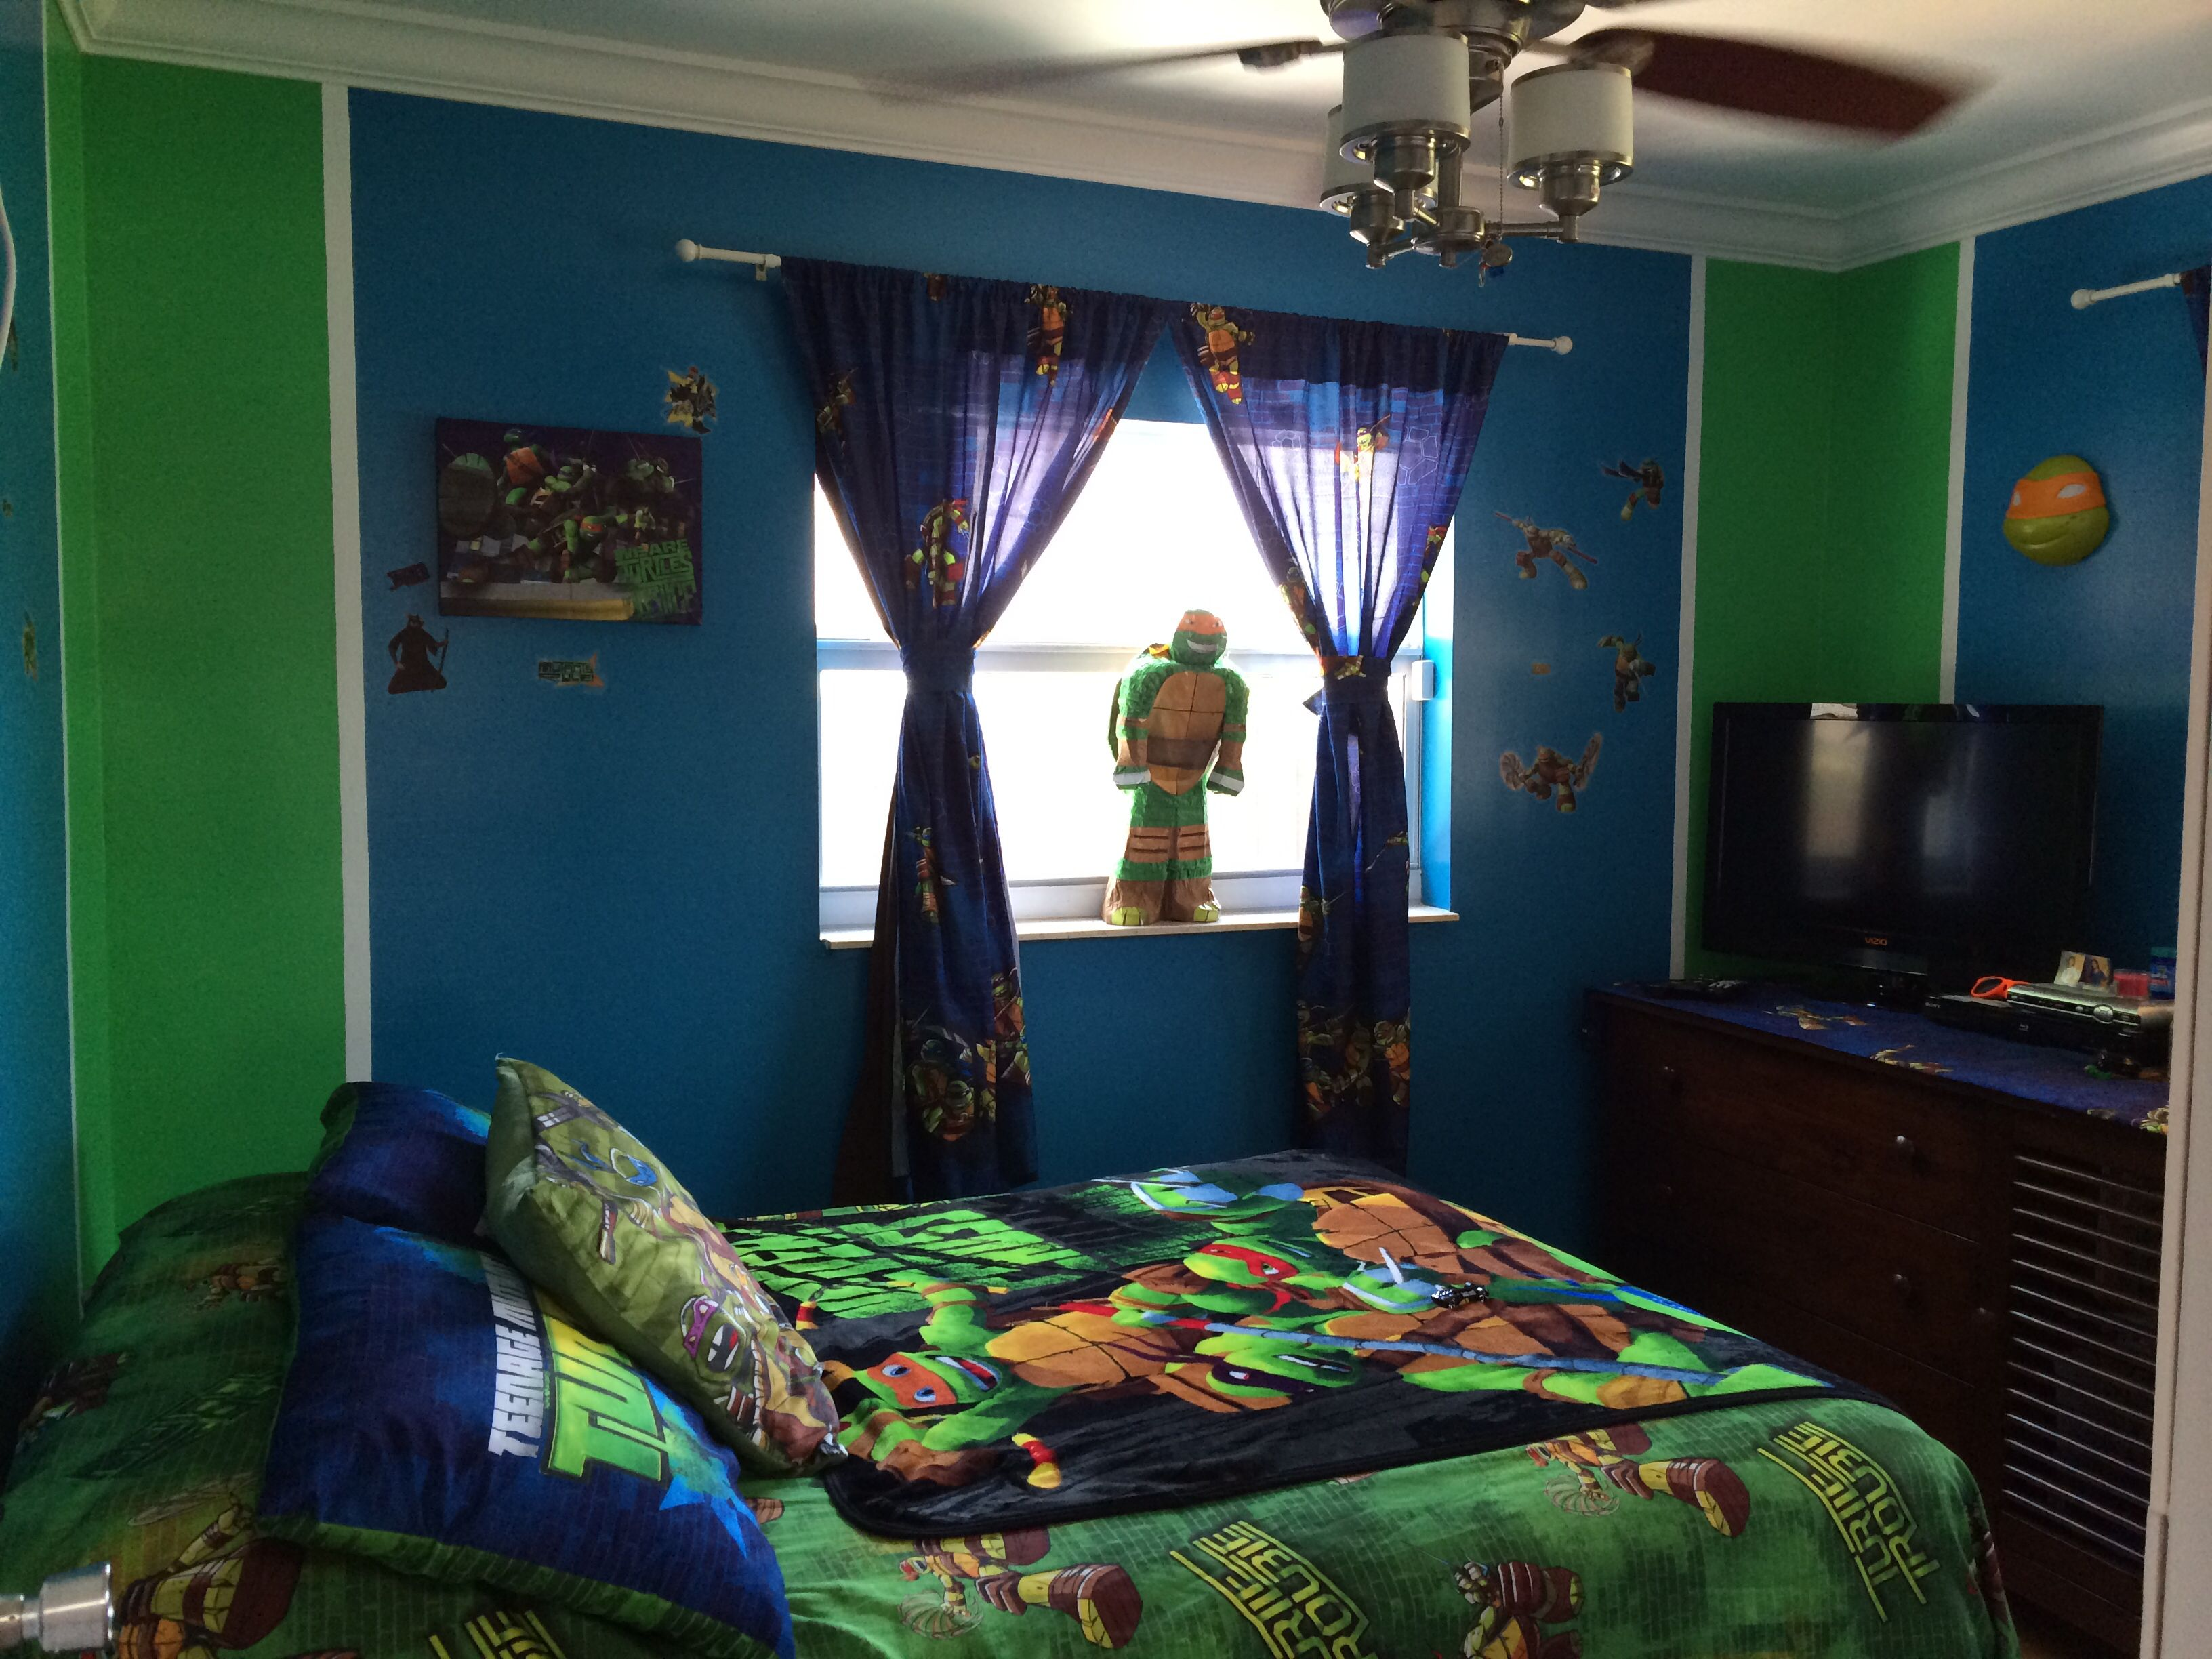 Bedroom colors blue and green - Tmnt Room Jordel Blue And Green Room